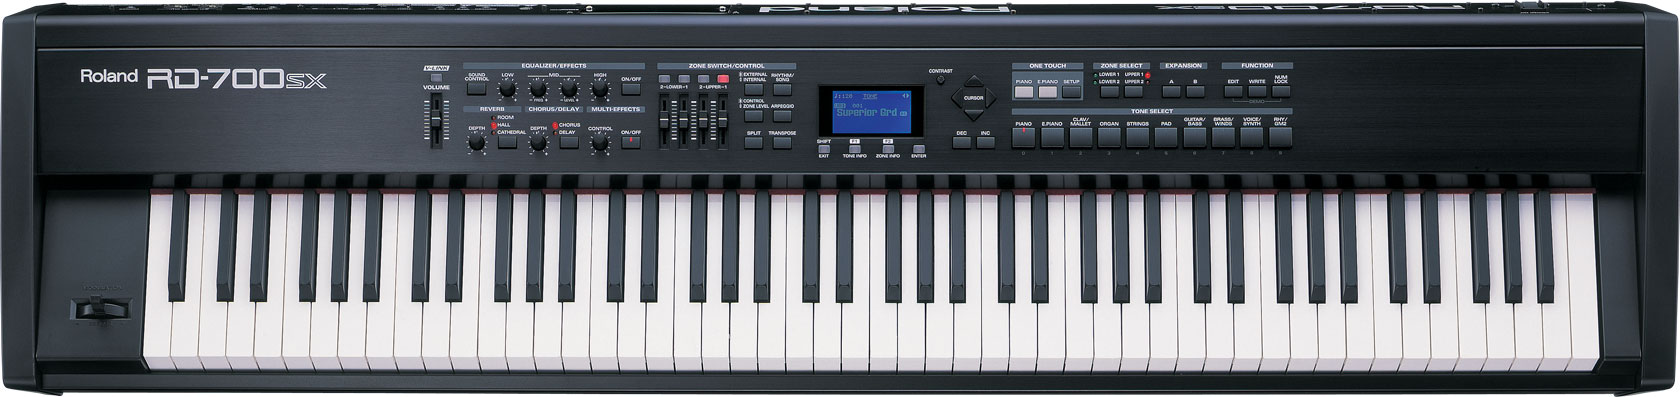 Roland - RD-700SX   Digital Stage Piano